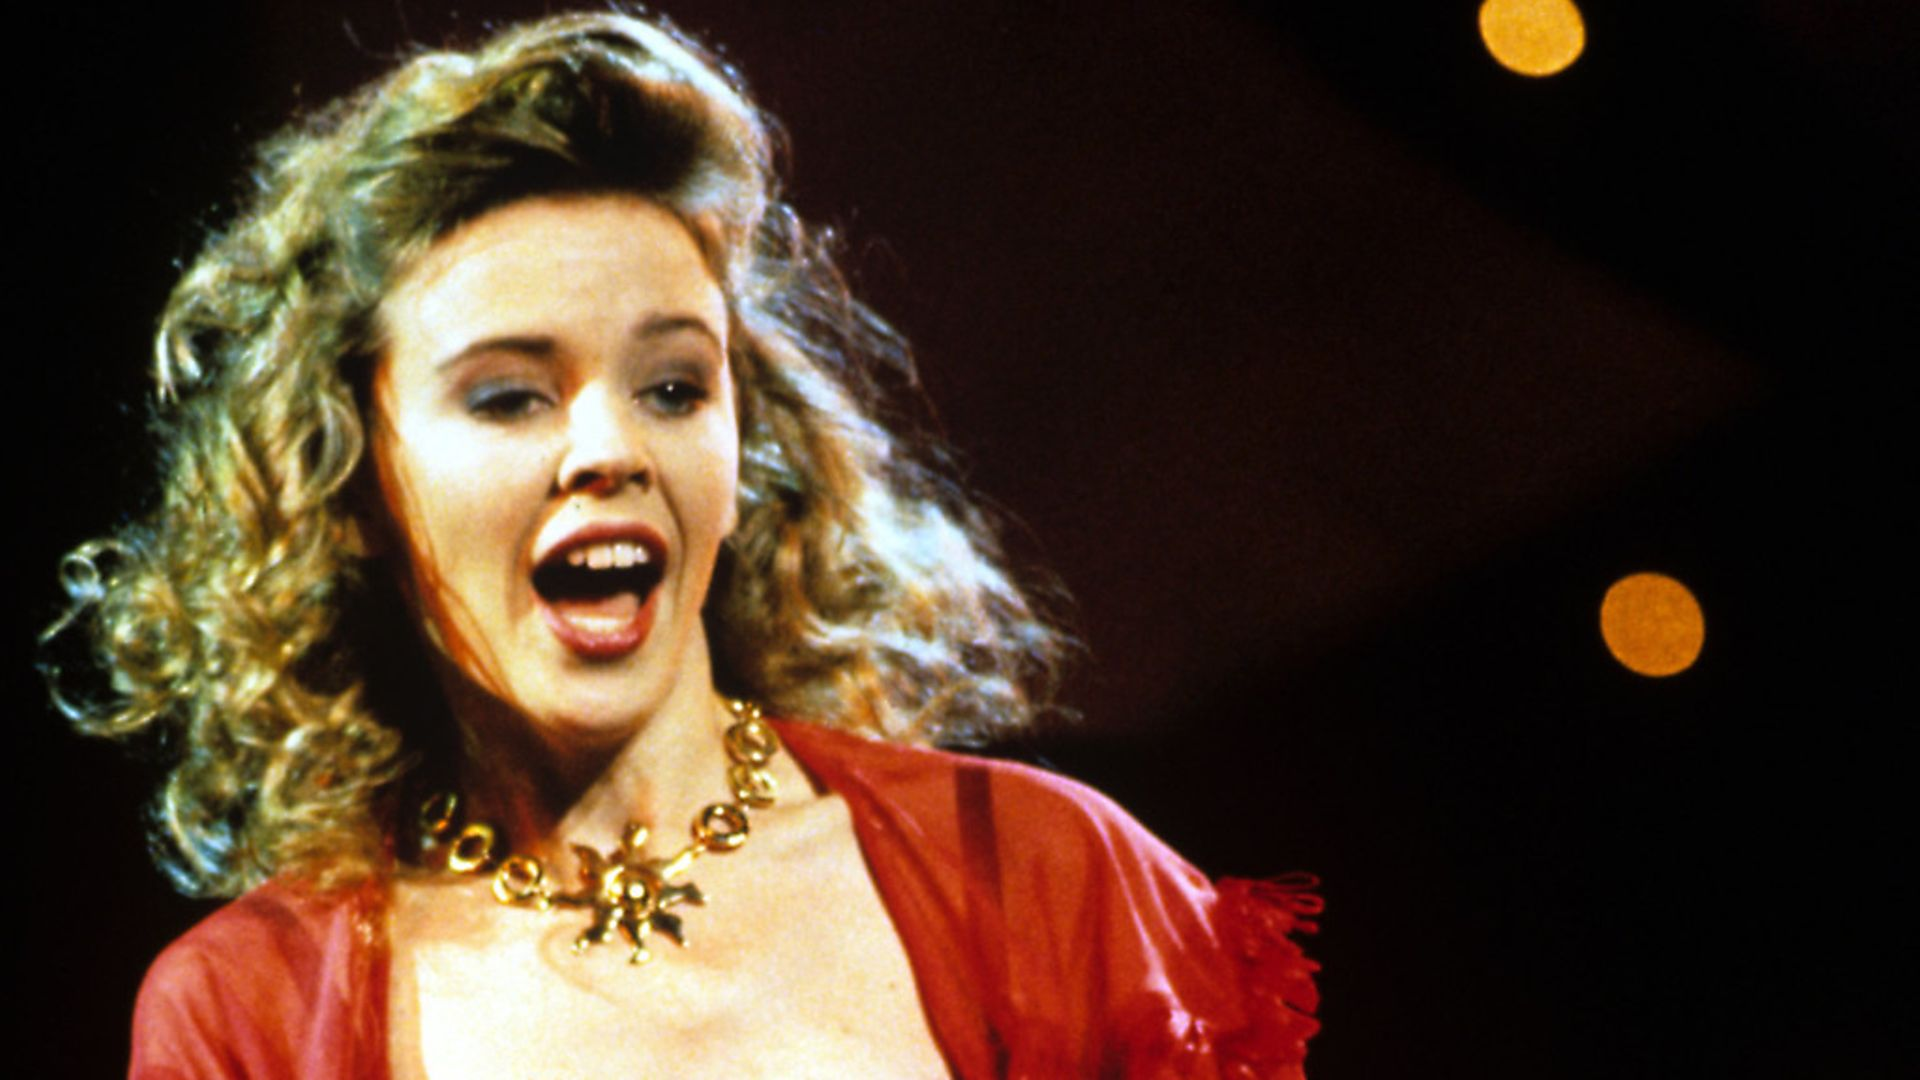 """""""In my imagination, there is no complication..."""" The lyrics to the Stock Aitken Waterman penned hit sum up the Brexiteers' attitude. Photo: the singer, Kylie Minogue, pictured in 1989, PA image - Credit: EMPICS Entertainment"""